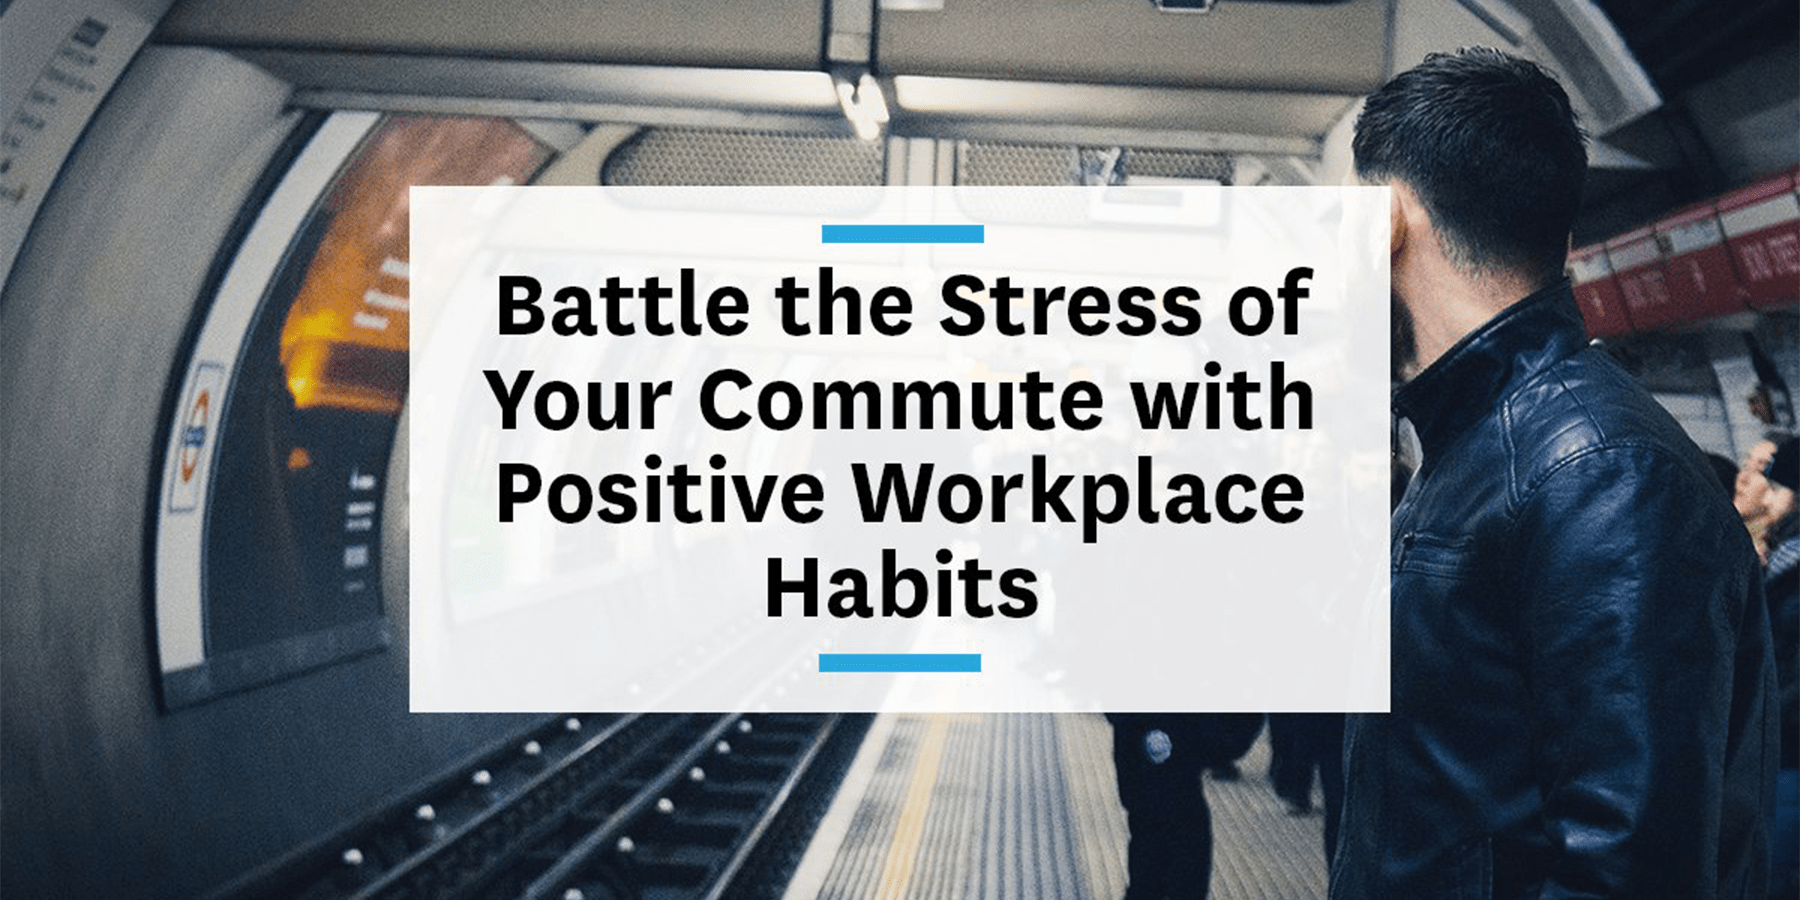 Feature image for fighting commuting stress with positive workplace habits